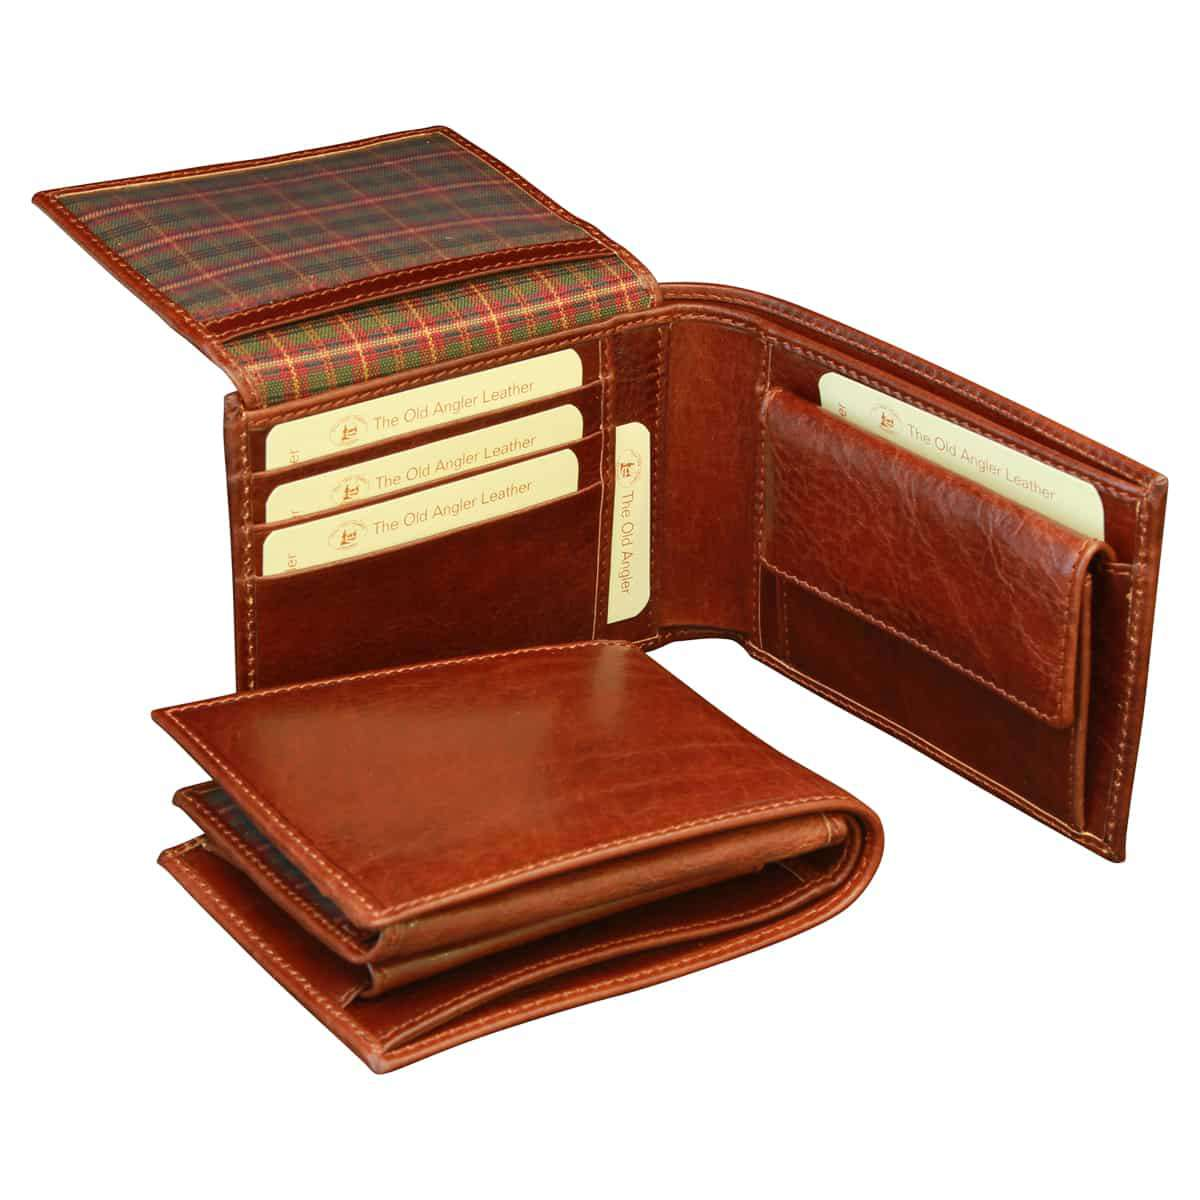 Leather Bifold wallet with coin pocket - Brown | 801105MA E | Old Angler Firenze